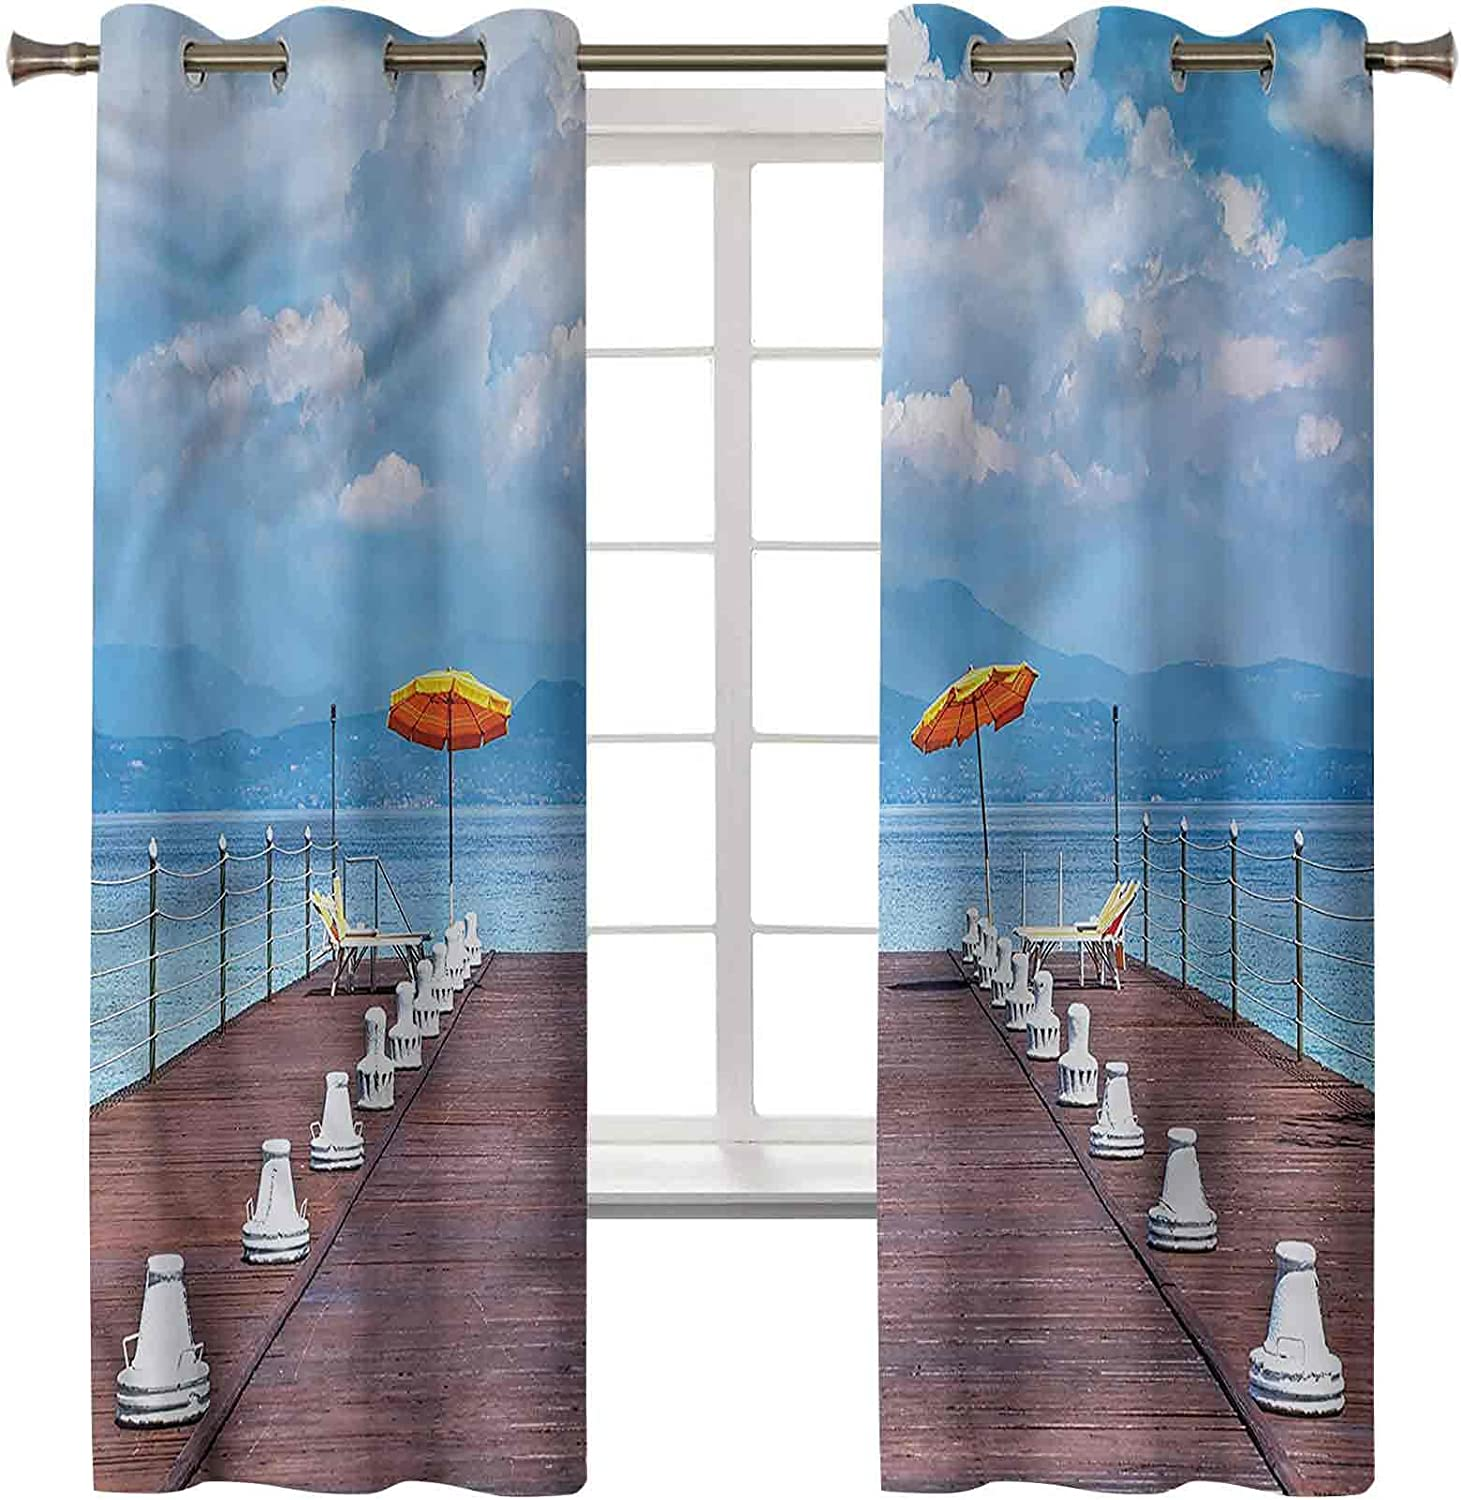 Fees free!! Discount mail order Blackout Window Curtain Thermal Insulated Home Seascape S Decor